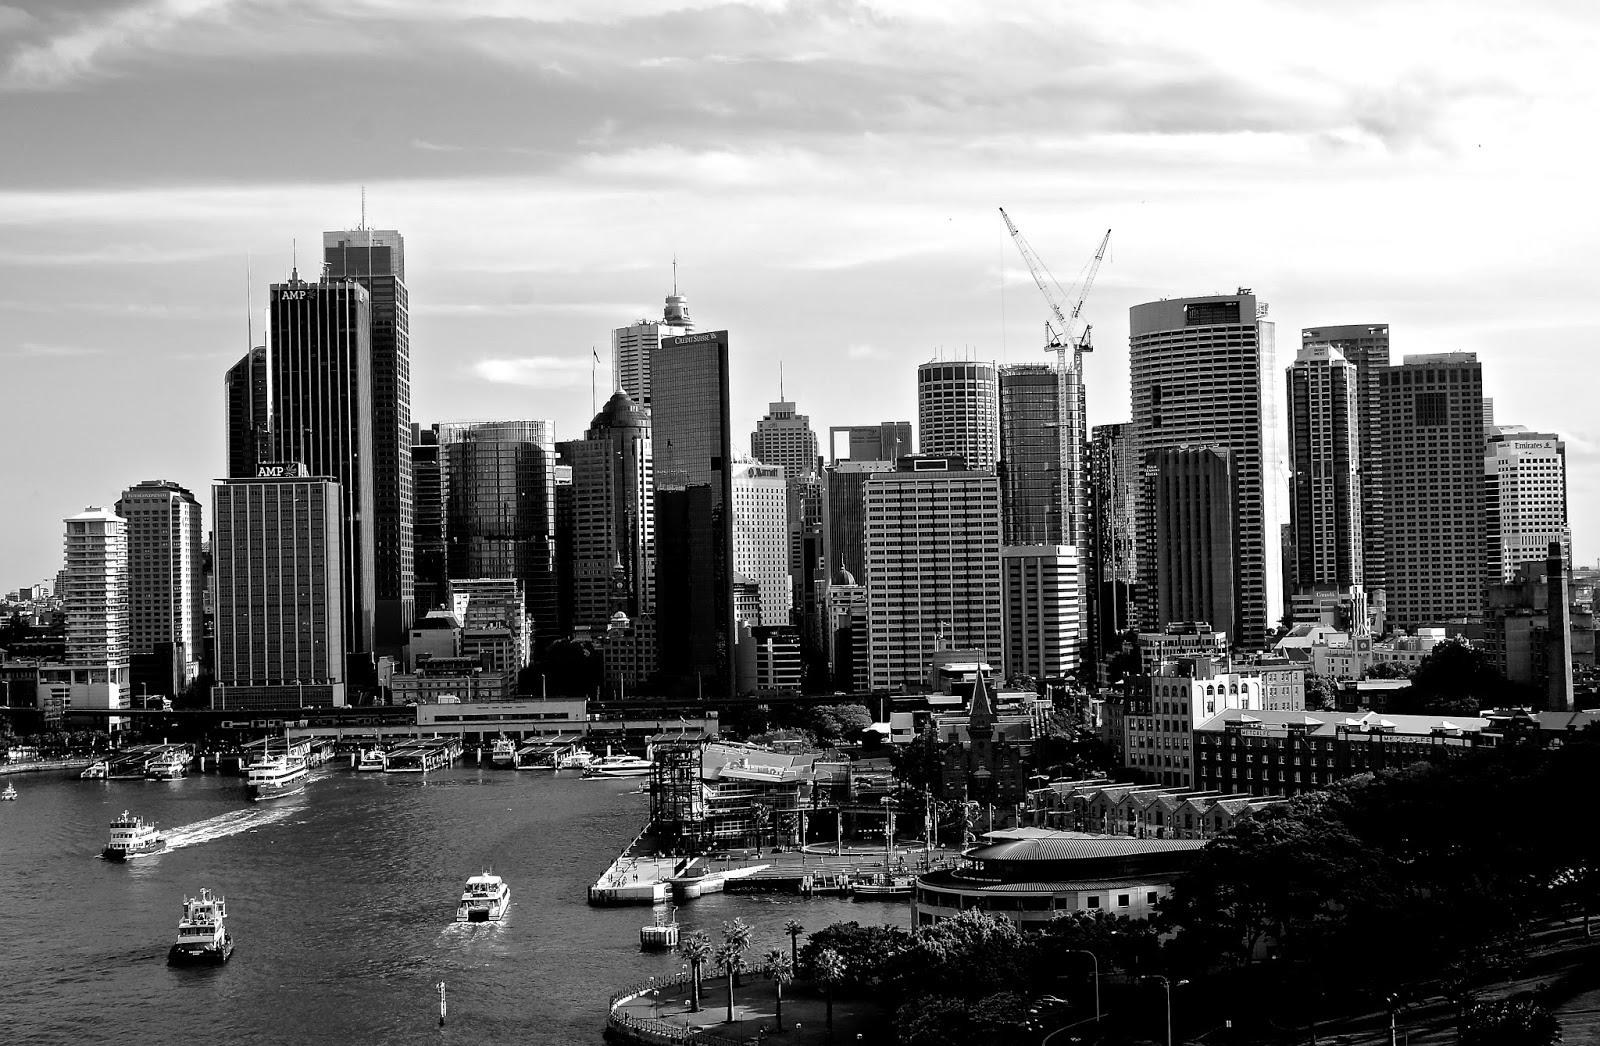 sydney harbour bridge australia central business district sydney opera house photography lexie blush www.lexieblush.co.uk